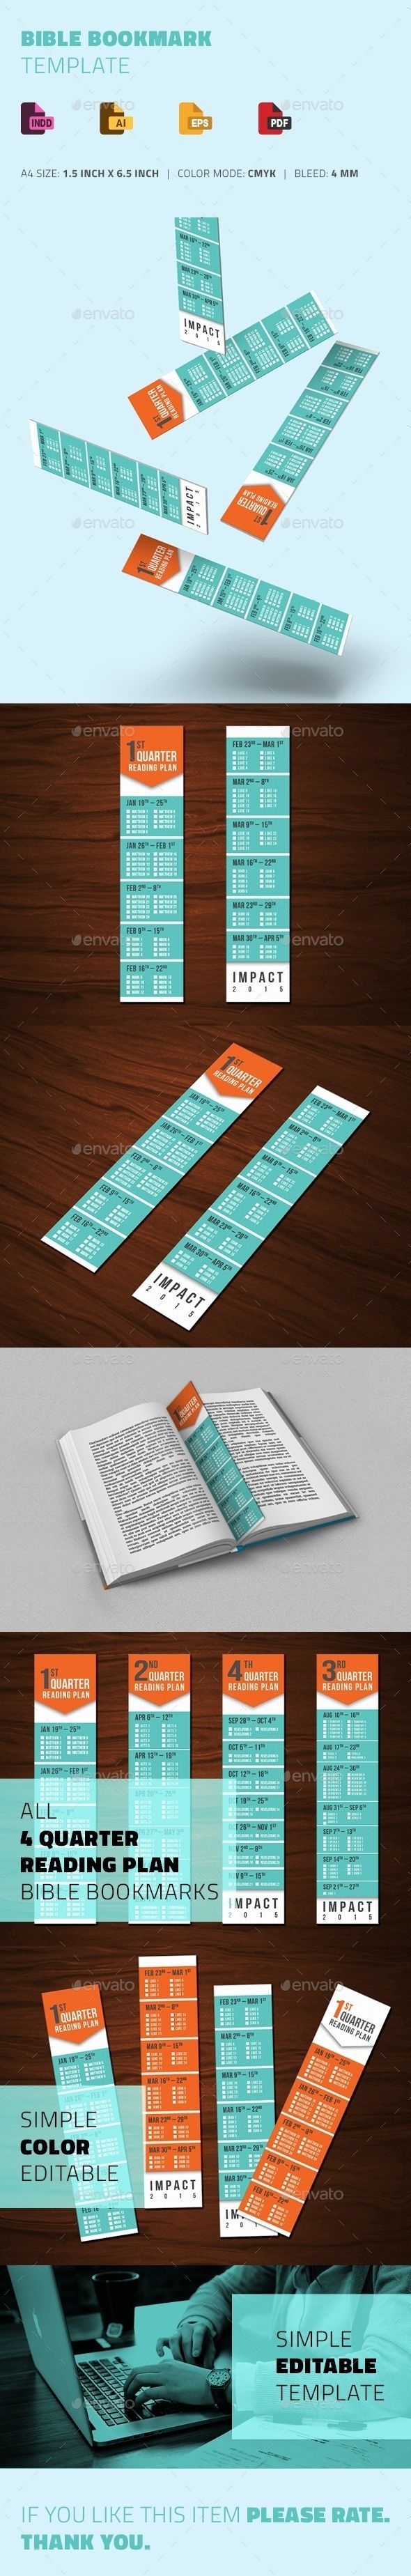 Editable Bible Bookmark Template